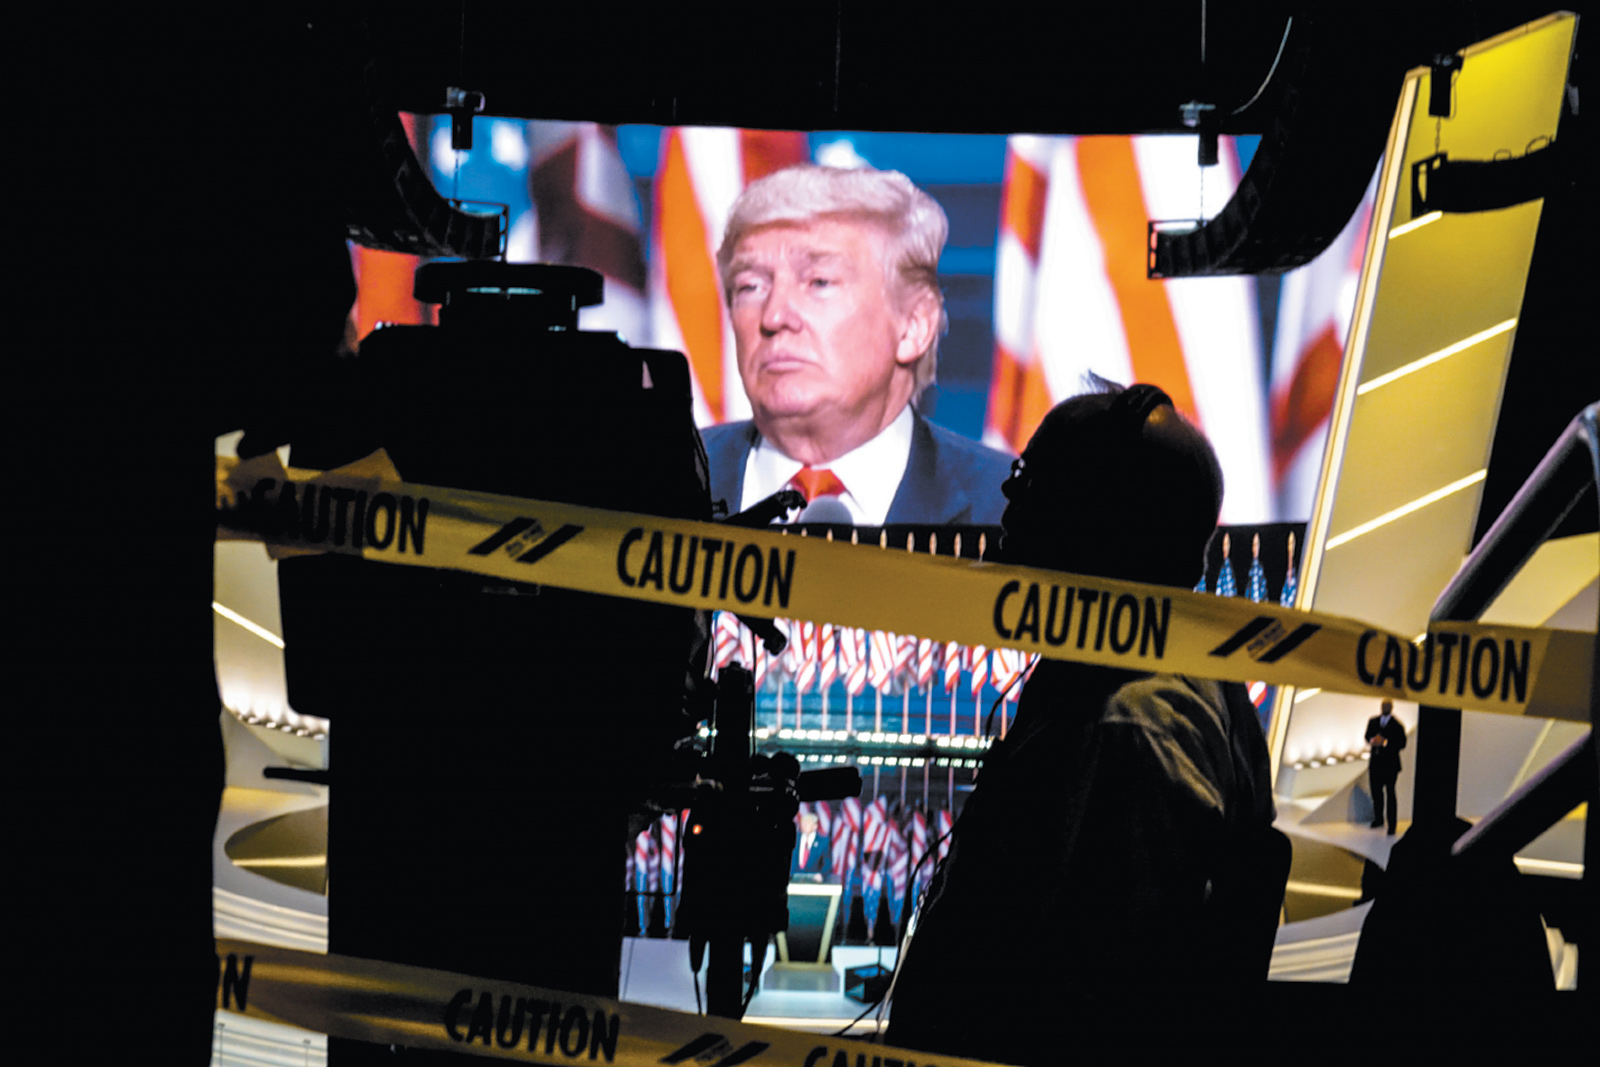 Donald Trump delivering his acceptance speech on the last night of the Republican National Convention, Cleveland, July 2016